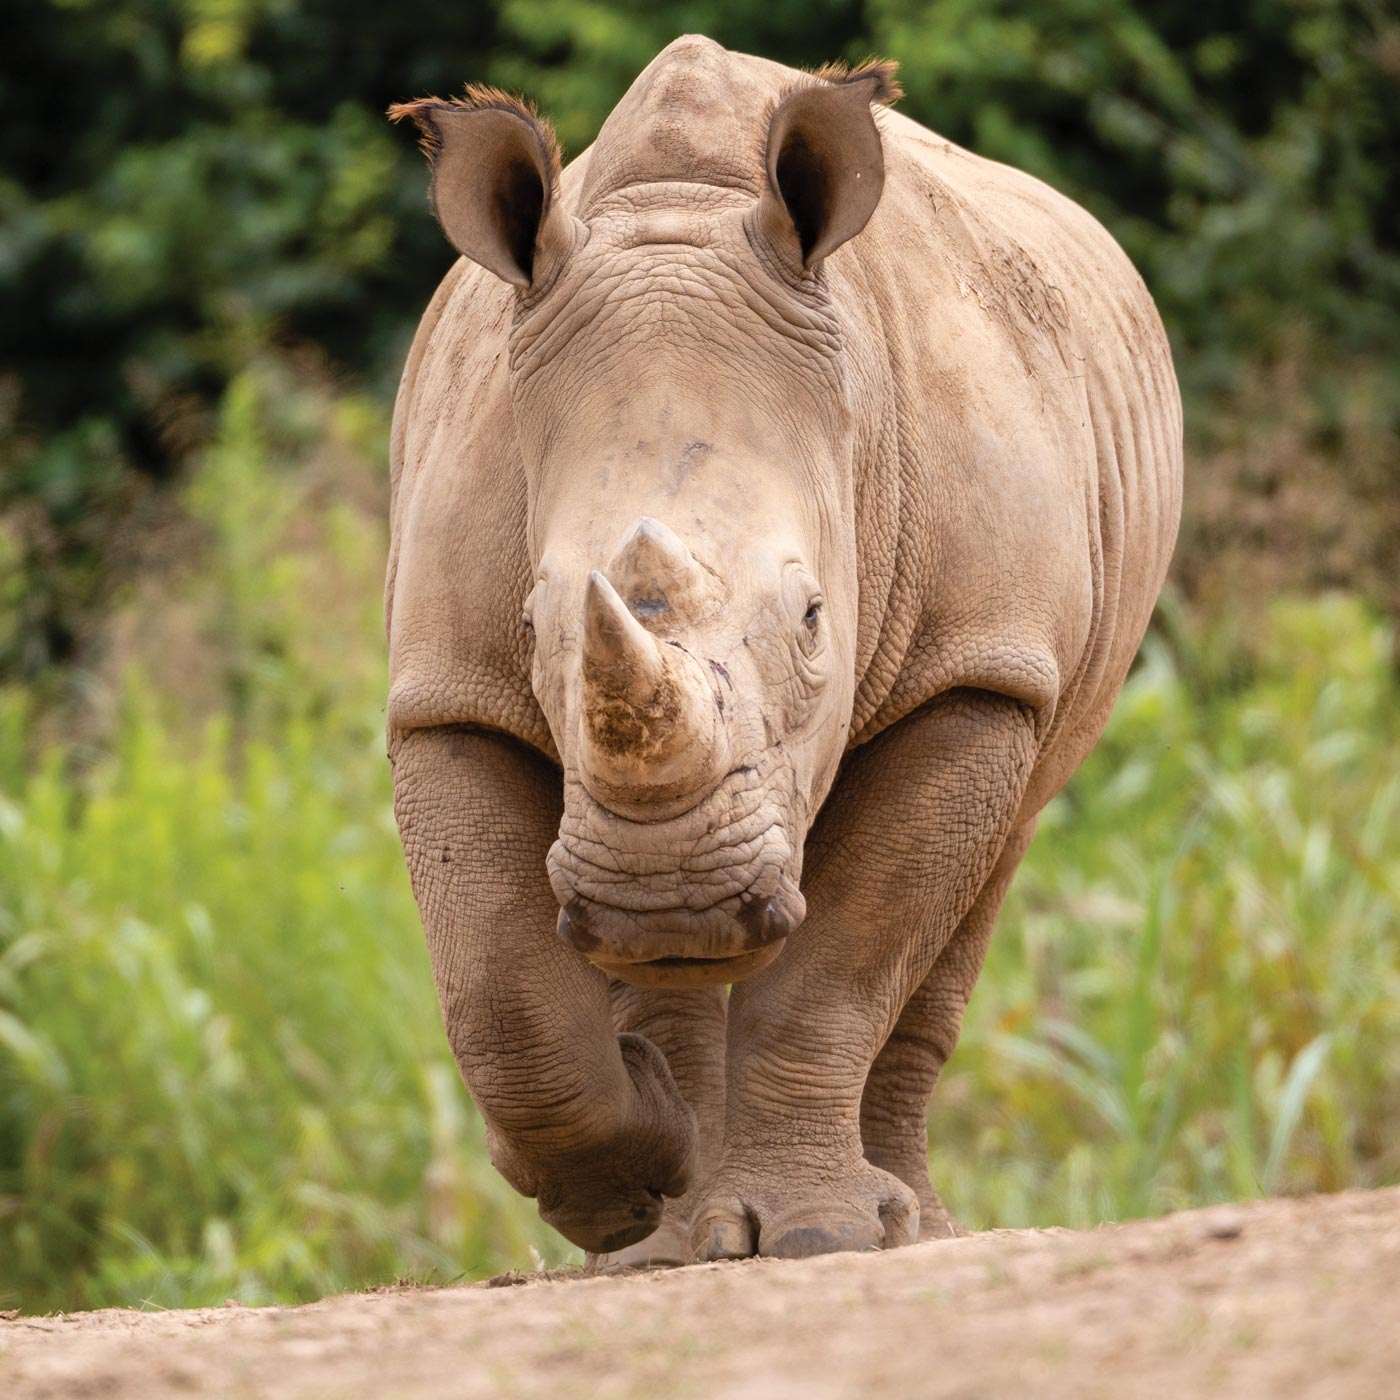 White rhino walking toward camera